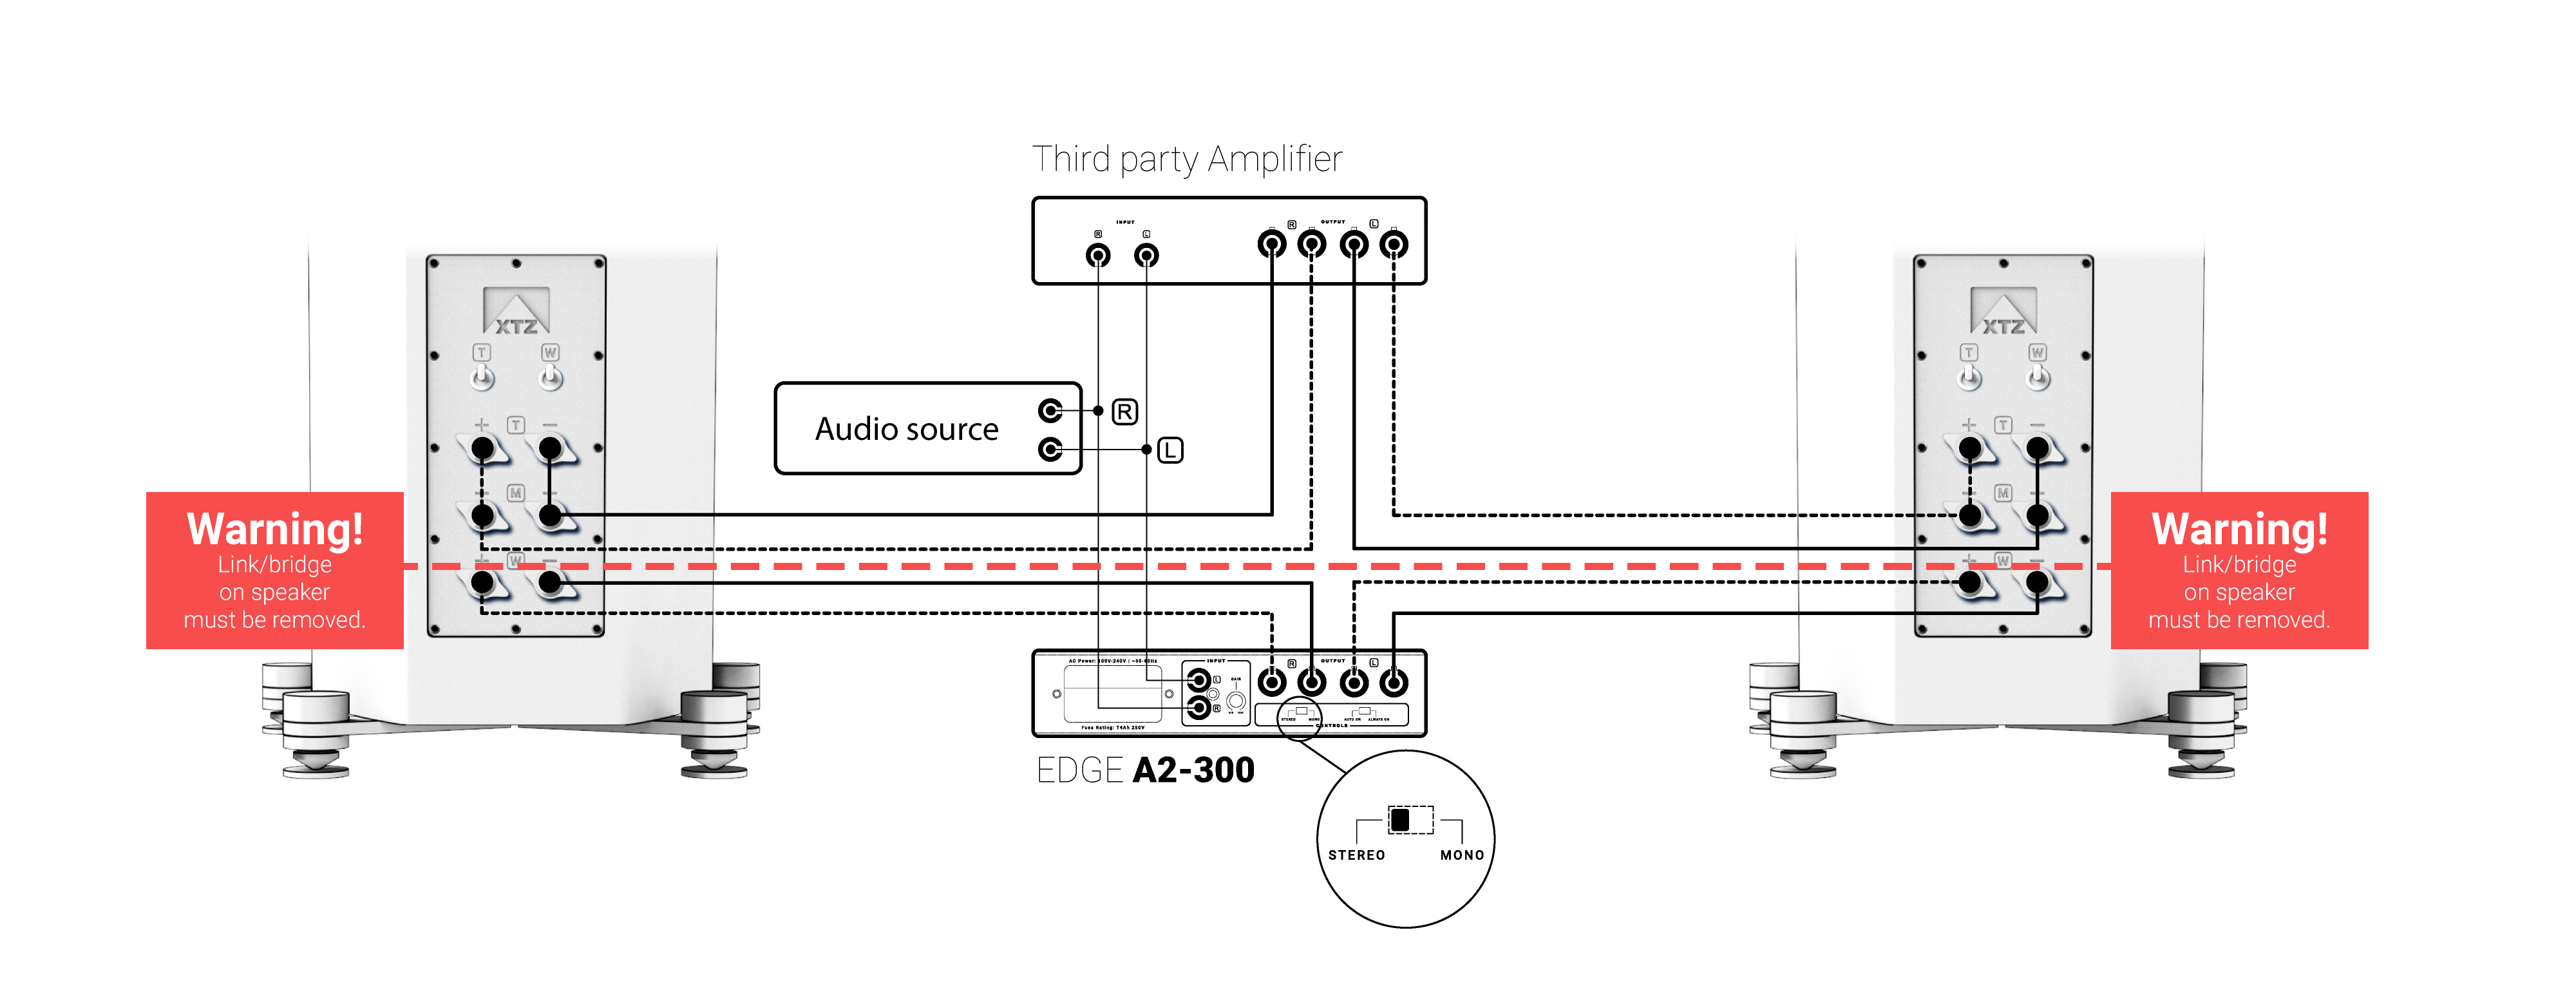 Bi-amping (Third Party Amplifier) Setup